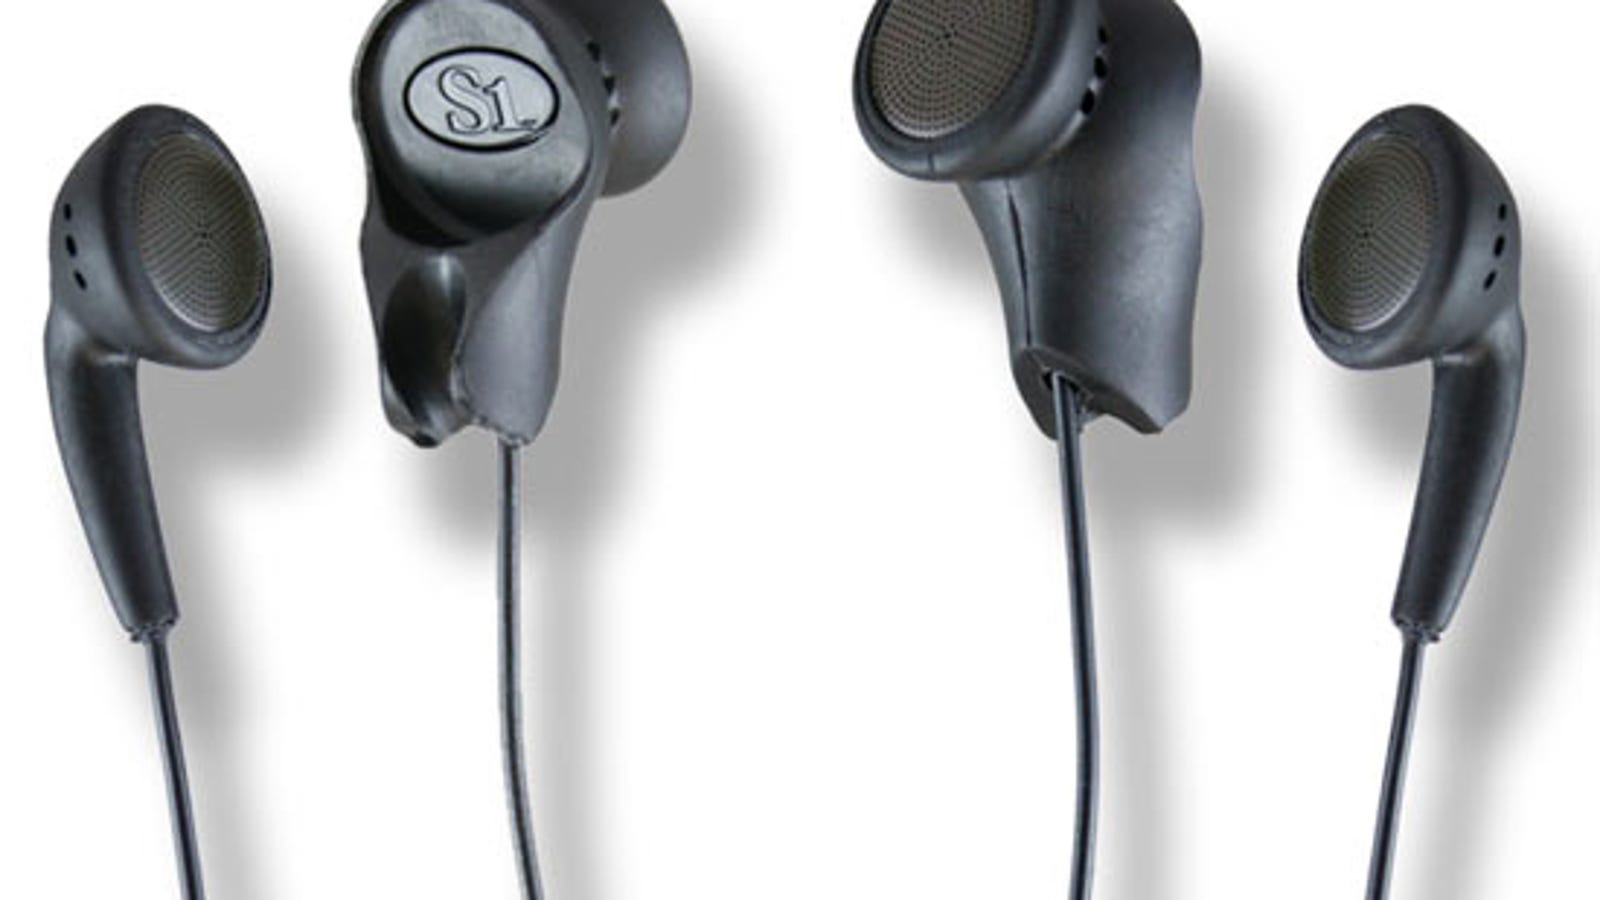 Usbc earphones - earphones no mic